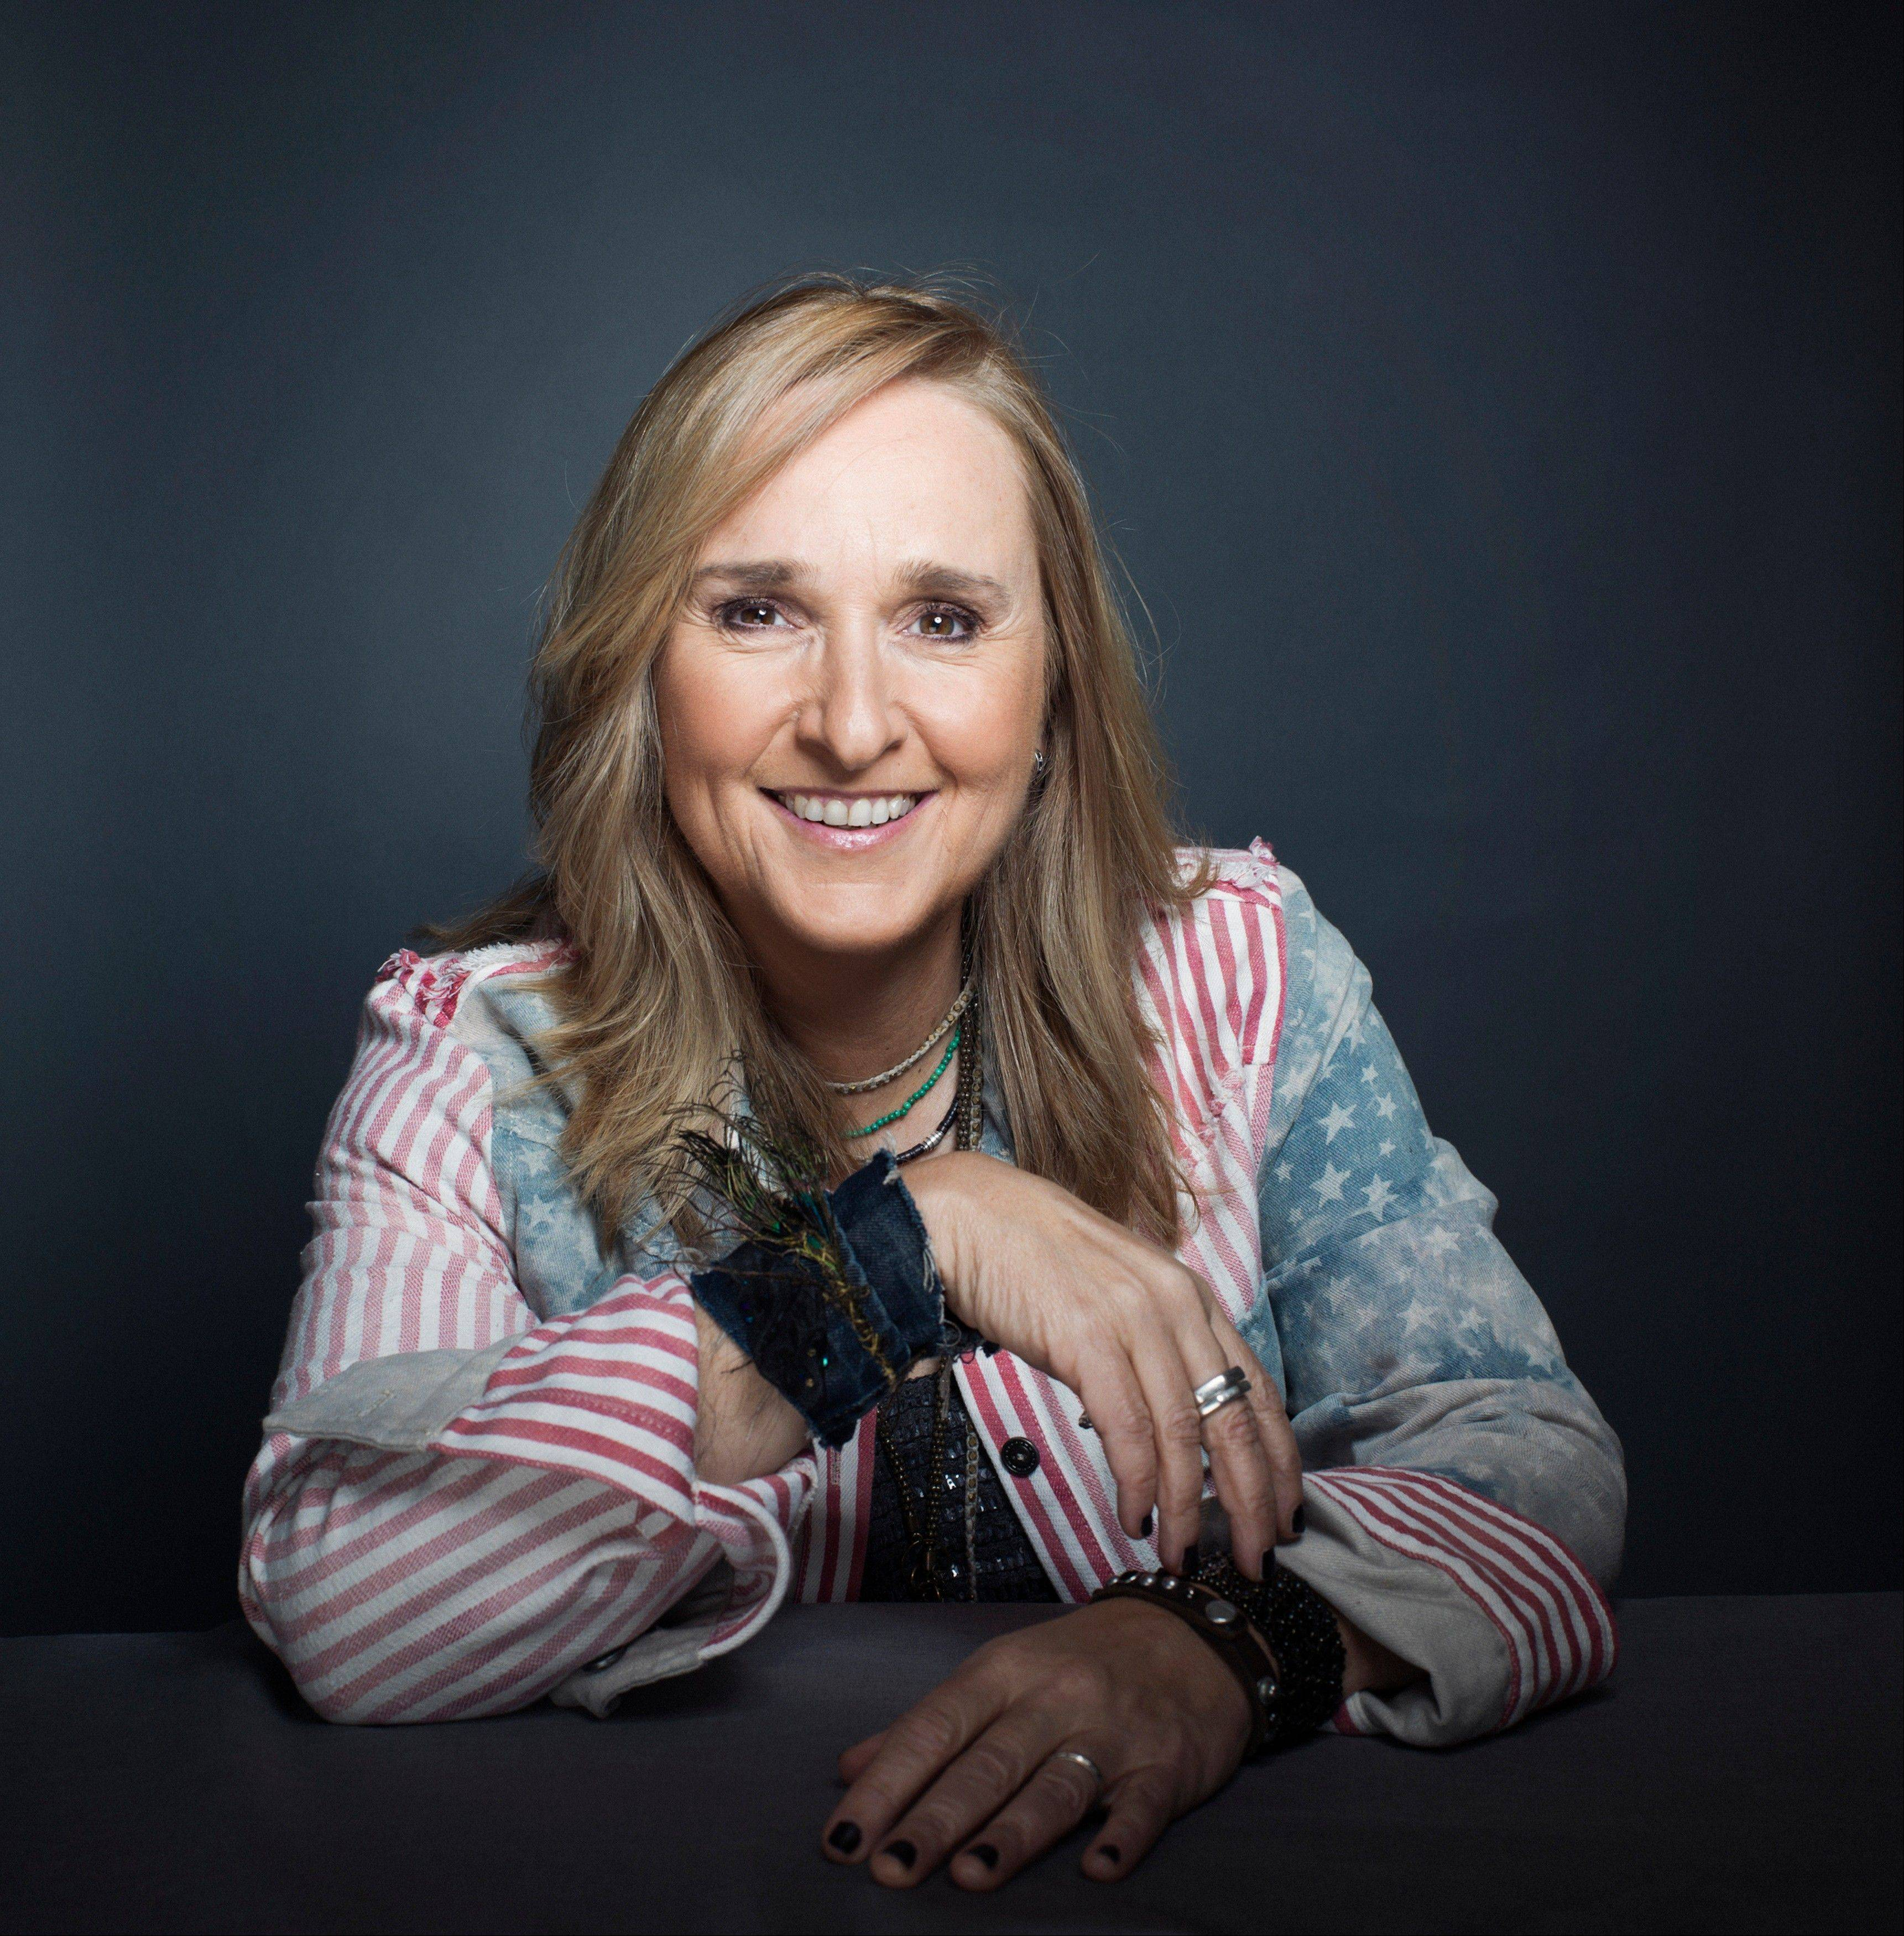 Singer-songwriter Melissa Etheridge challenged herself to play all the guitar parts on her new CD �4th Street Feeling.�